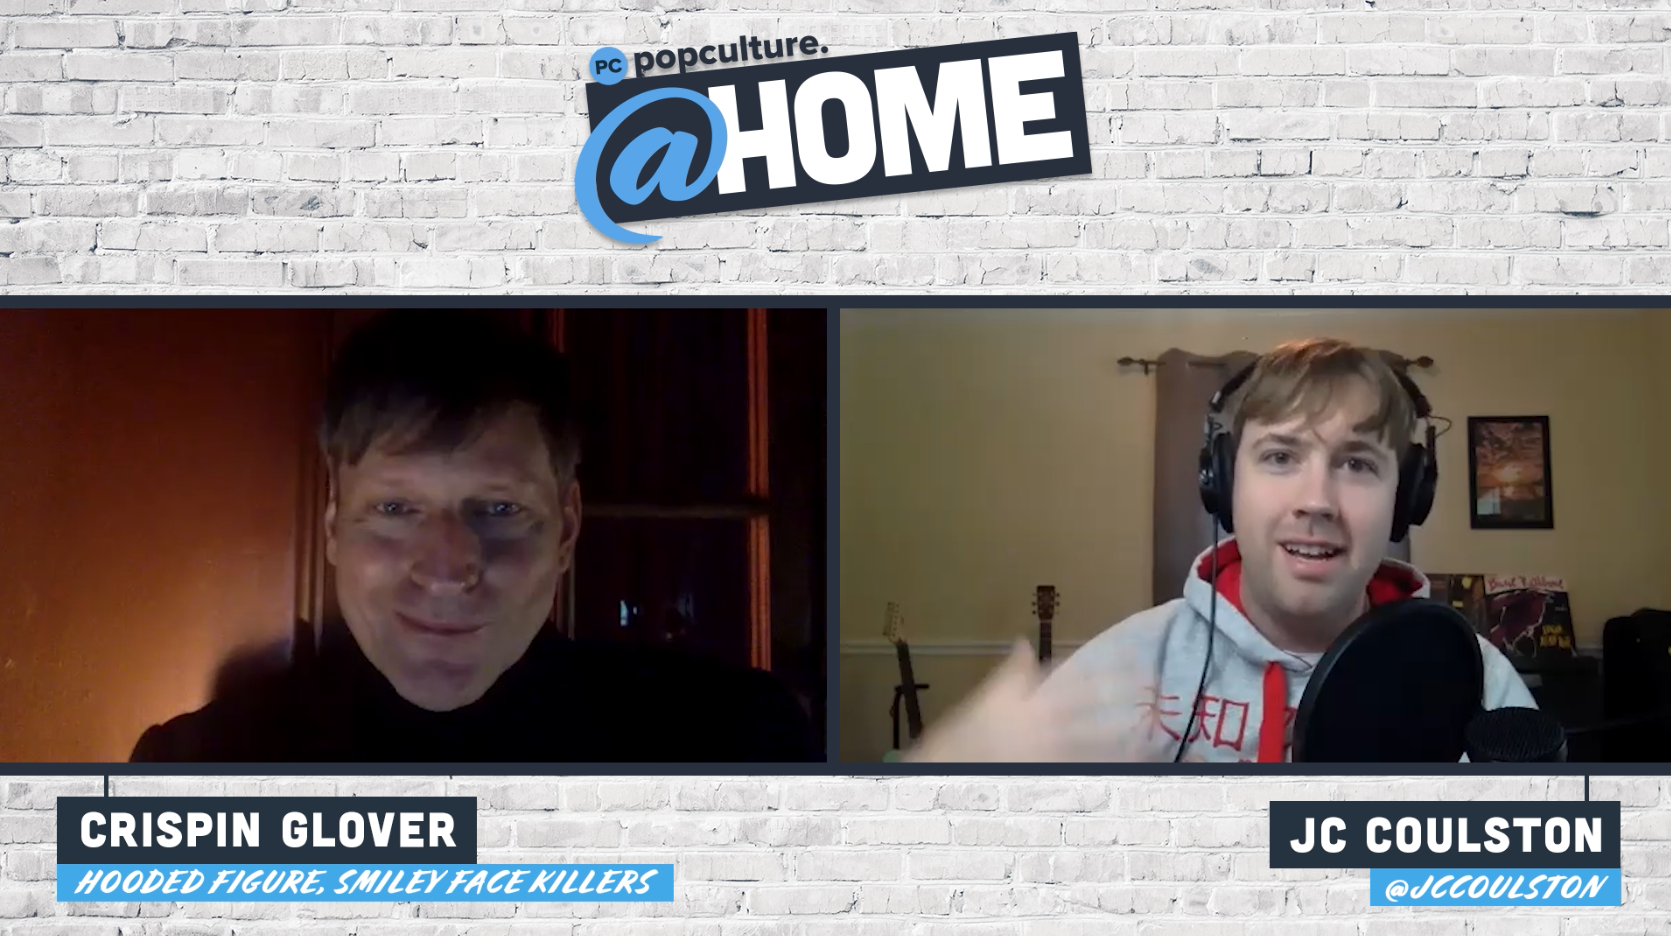 Crispin Glover Talks Smiley Face Killers - PopCulture @Home Exclusive Interview